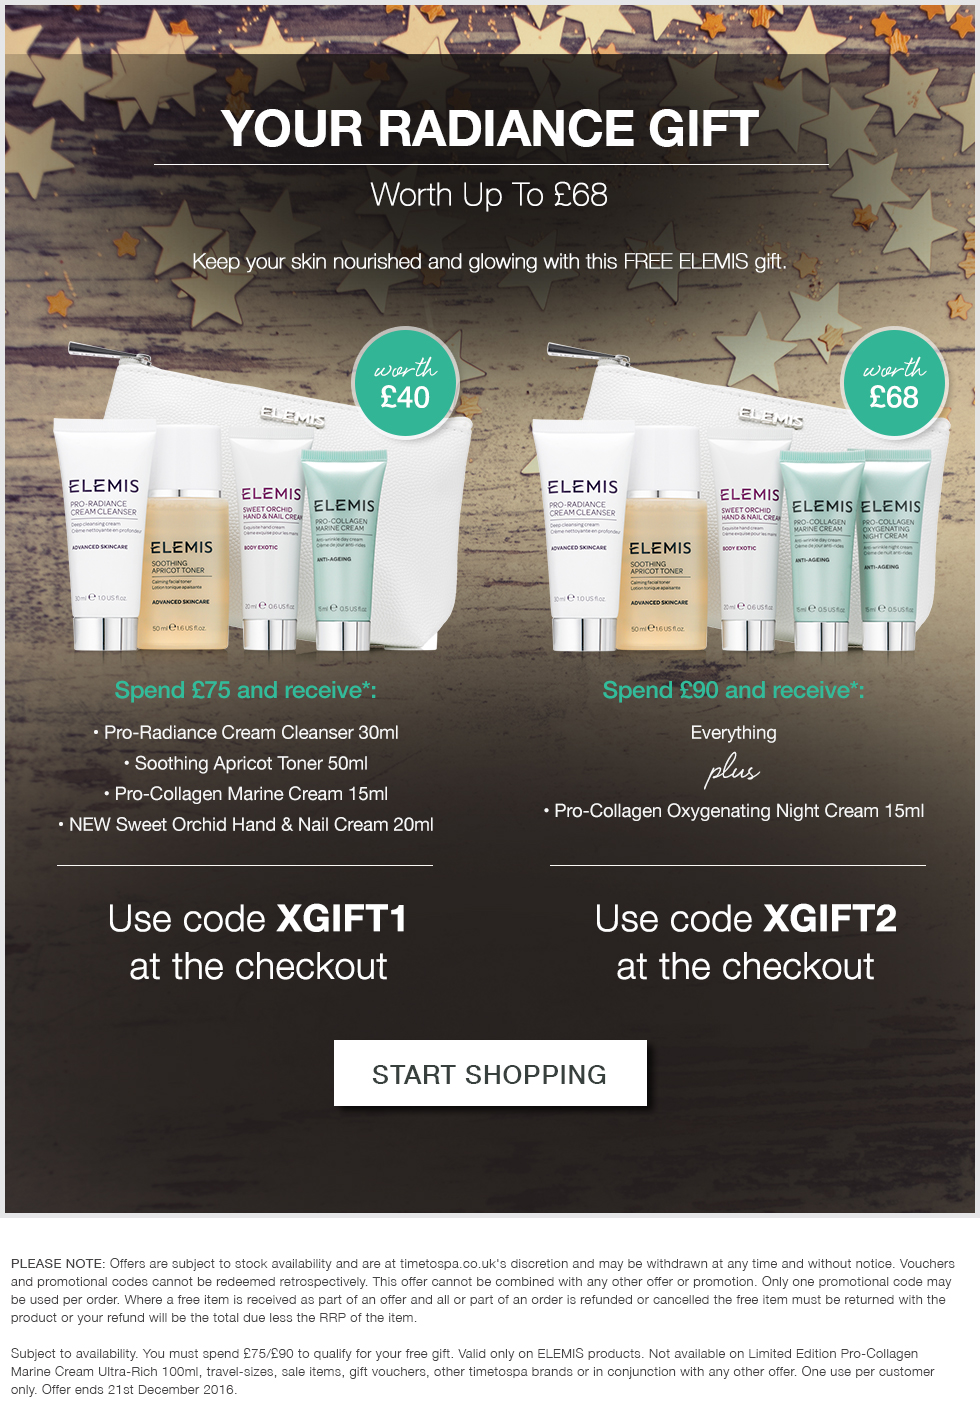 Free Radiance Collection - Worth Up To £68